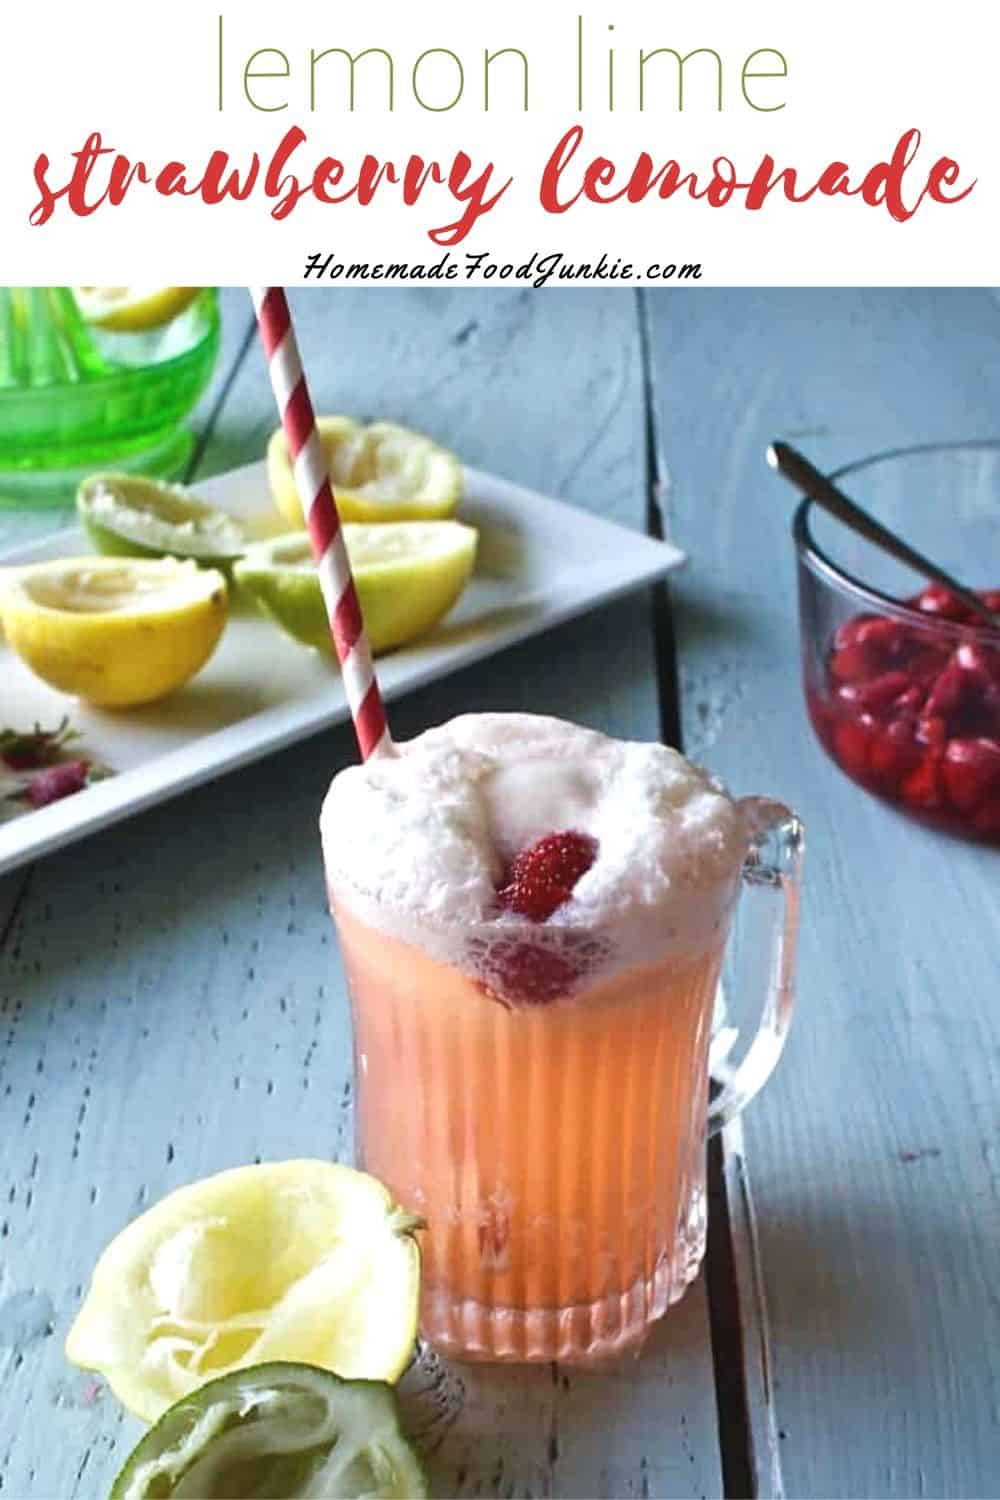 lemon lime strawberry lemonade-pin image